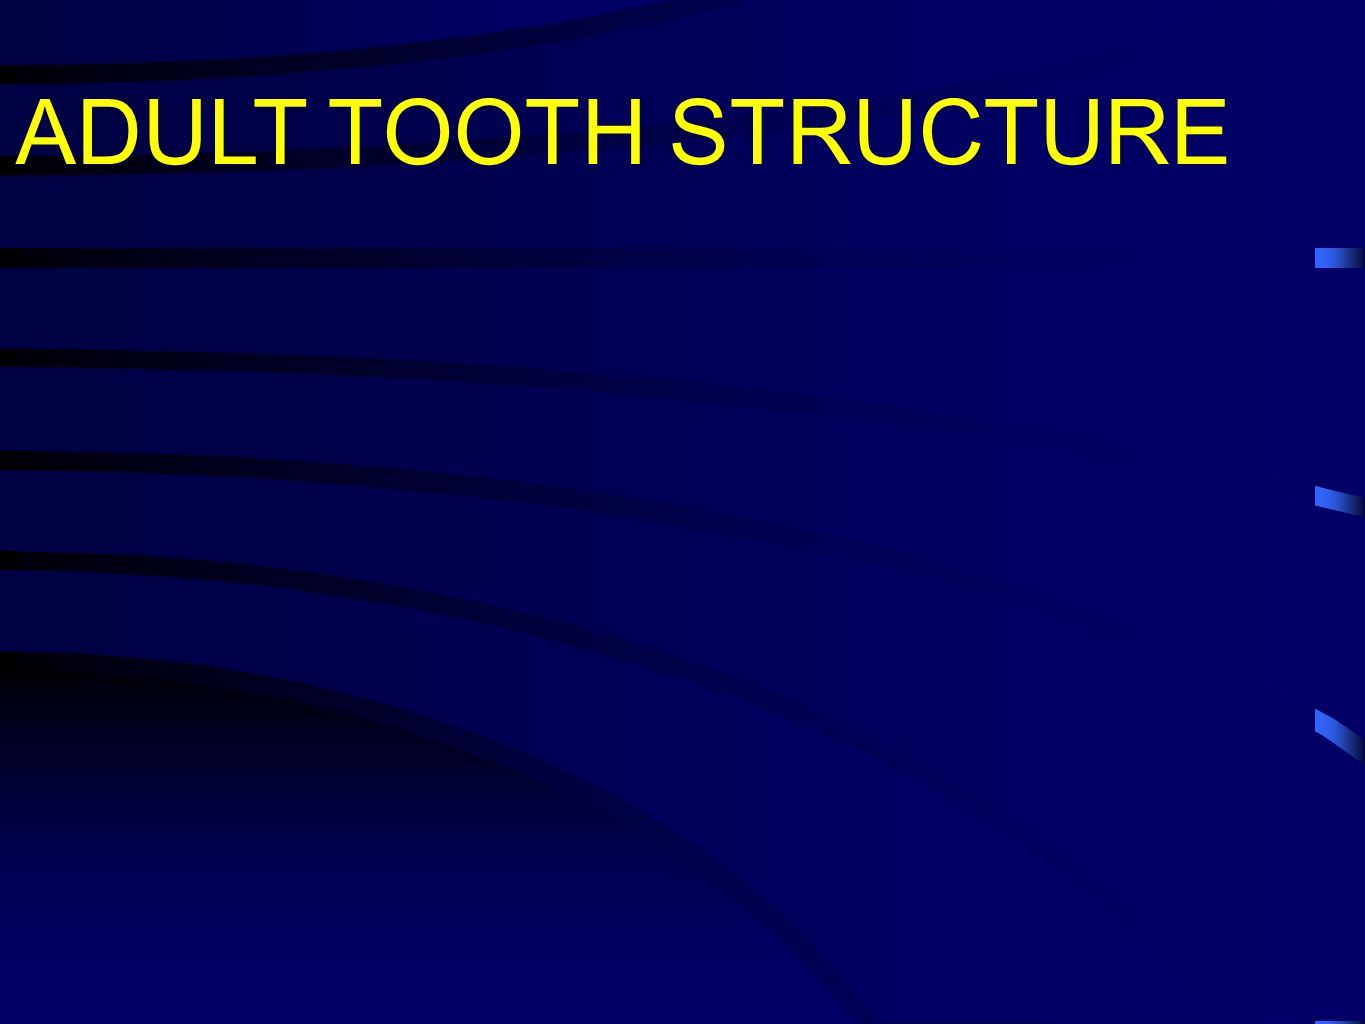 ADULT TOOTH STRUCTURE